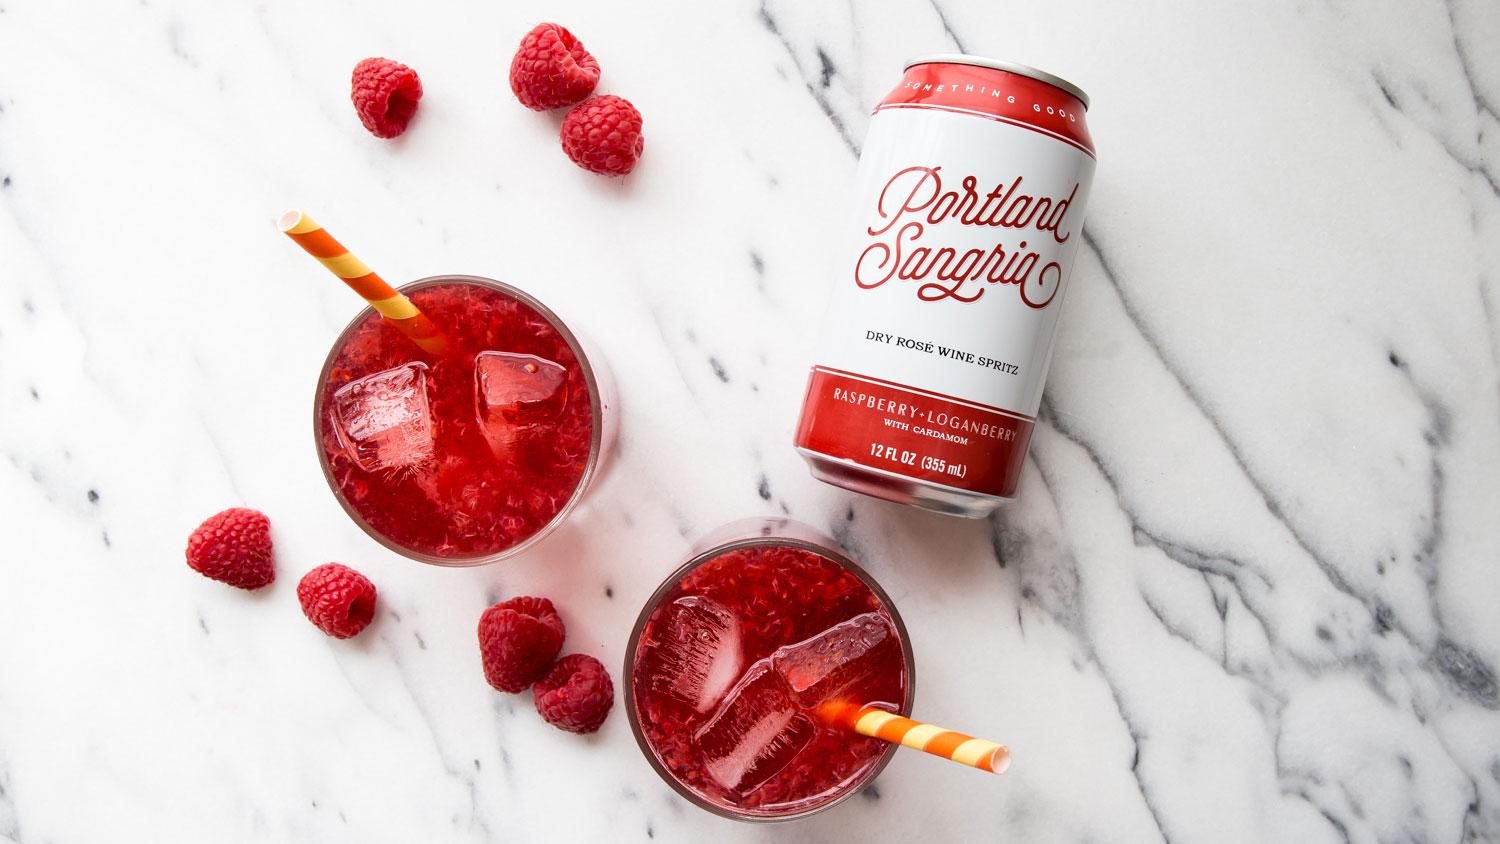 9 Cocktails You Should Drink Out of Cans This Summer